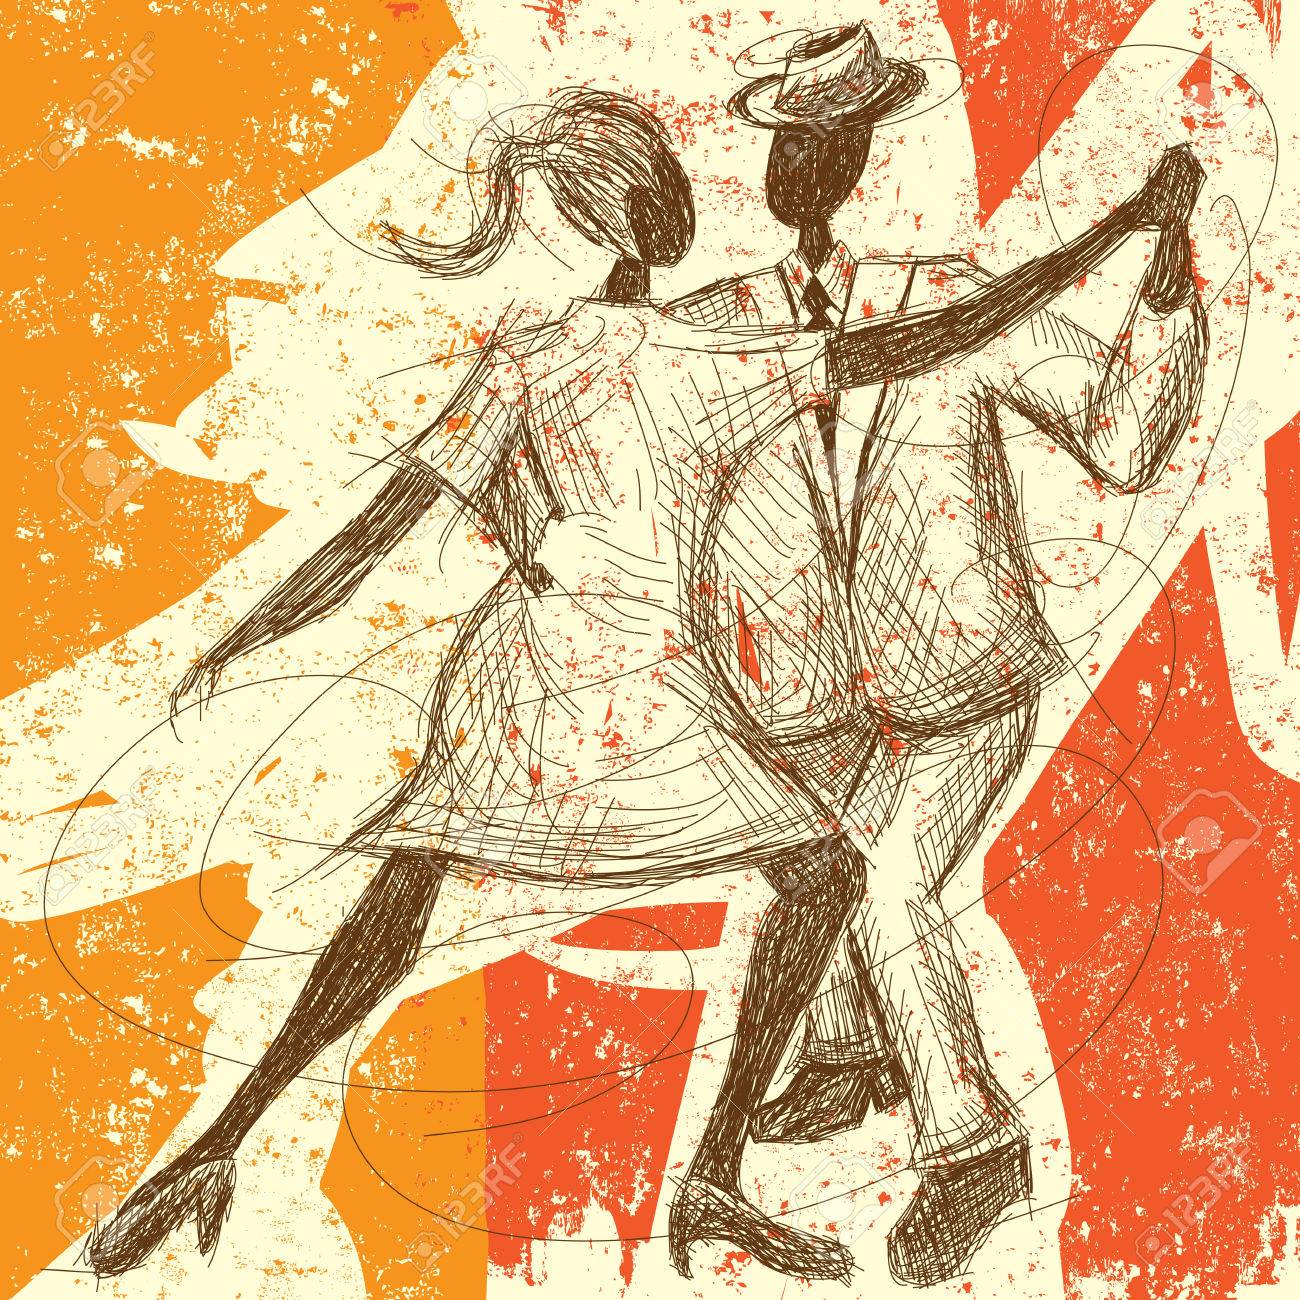 Tango Couple, A sketchy, hand-drawn couple dancing the tango over an abstract background. - 37973547